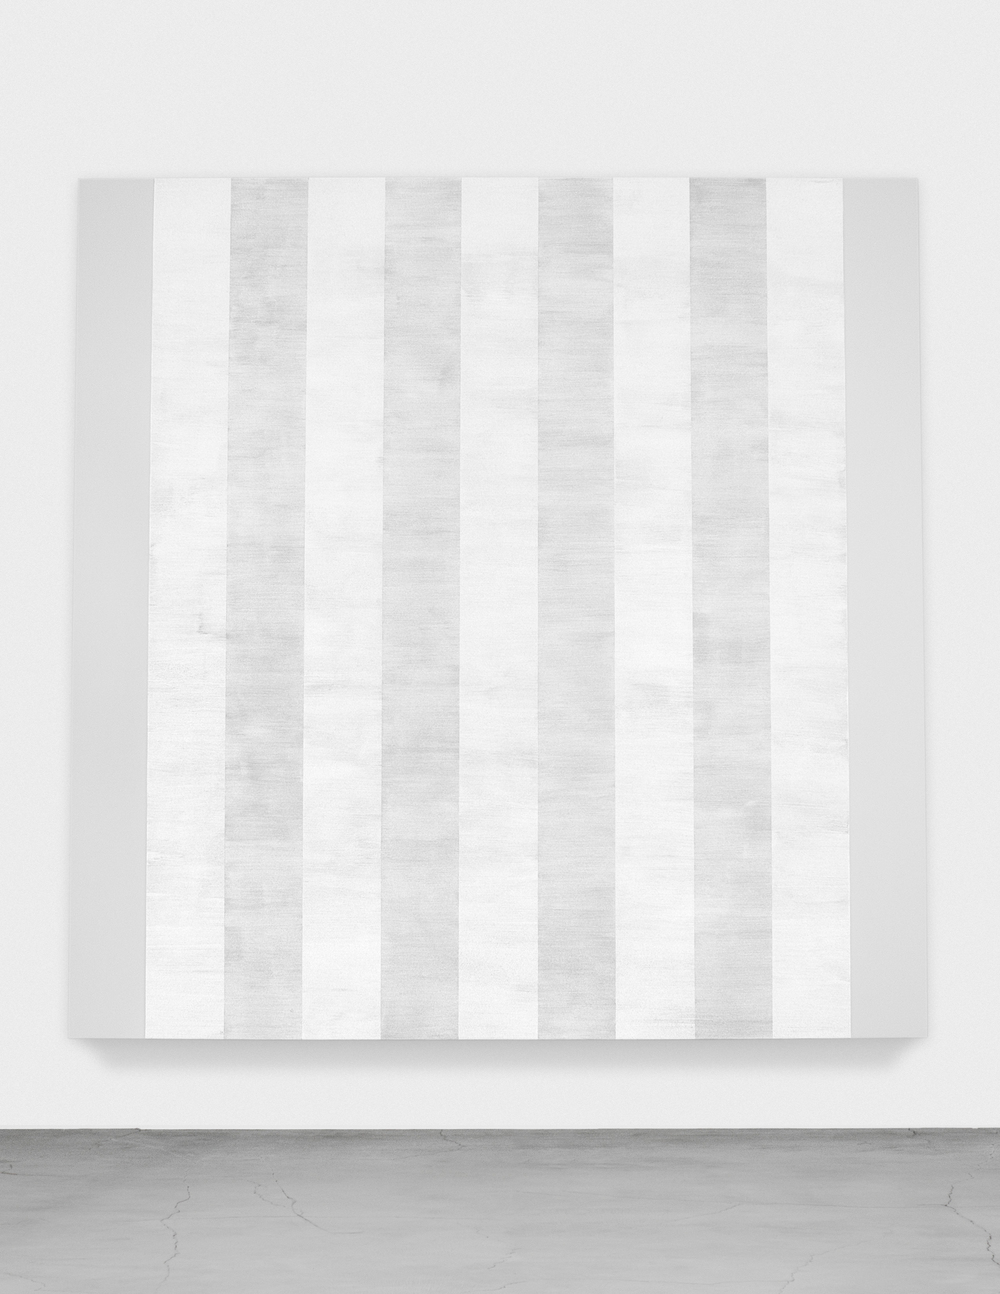 Untitled (White Multiple Inner Bands, Beveled), 2011  Glass Microspheres In Acrylic On Canvas 8' (H) X 8' (W) Ace Gallery